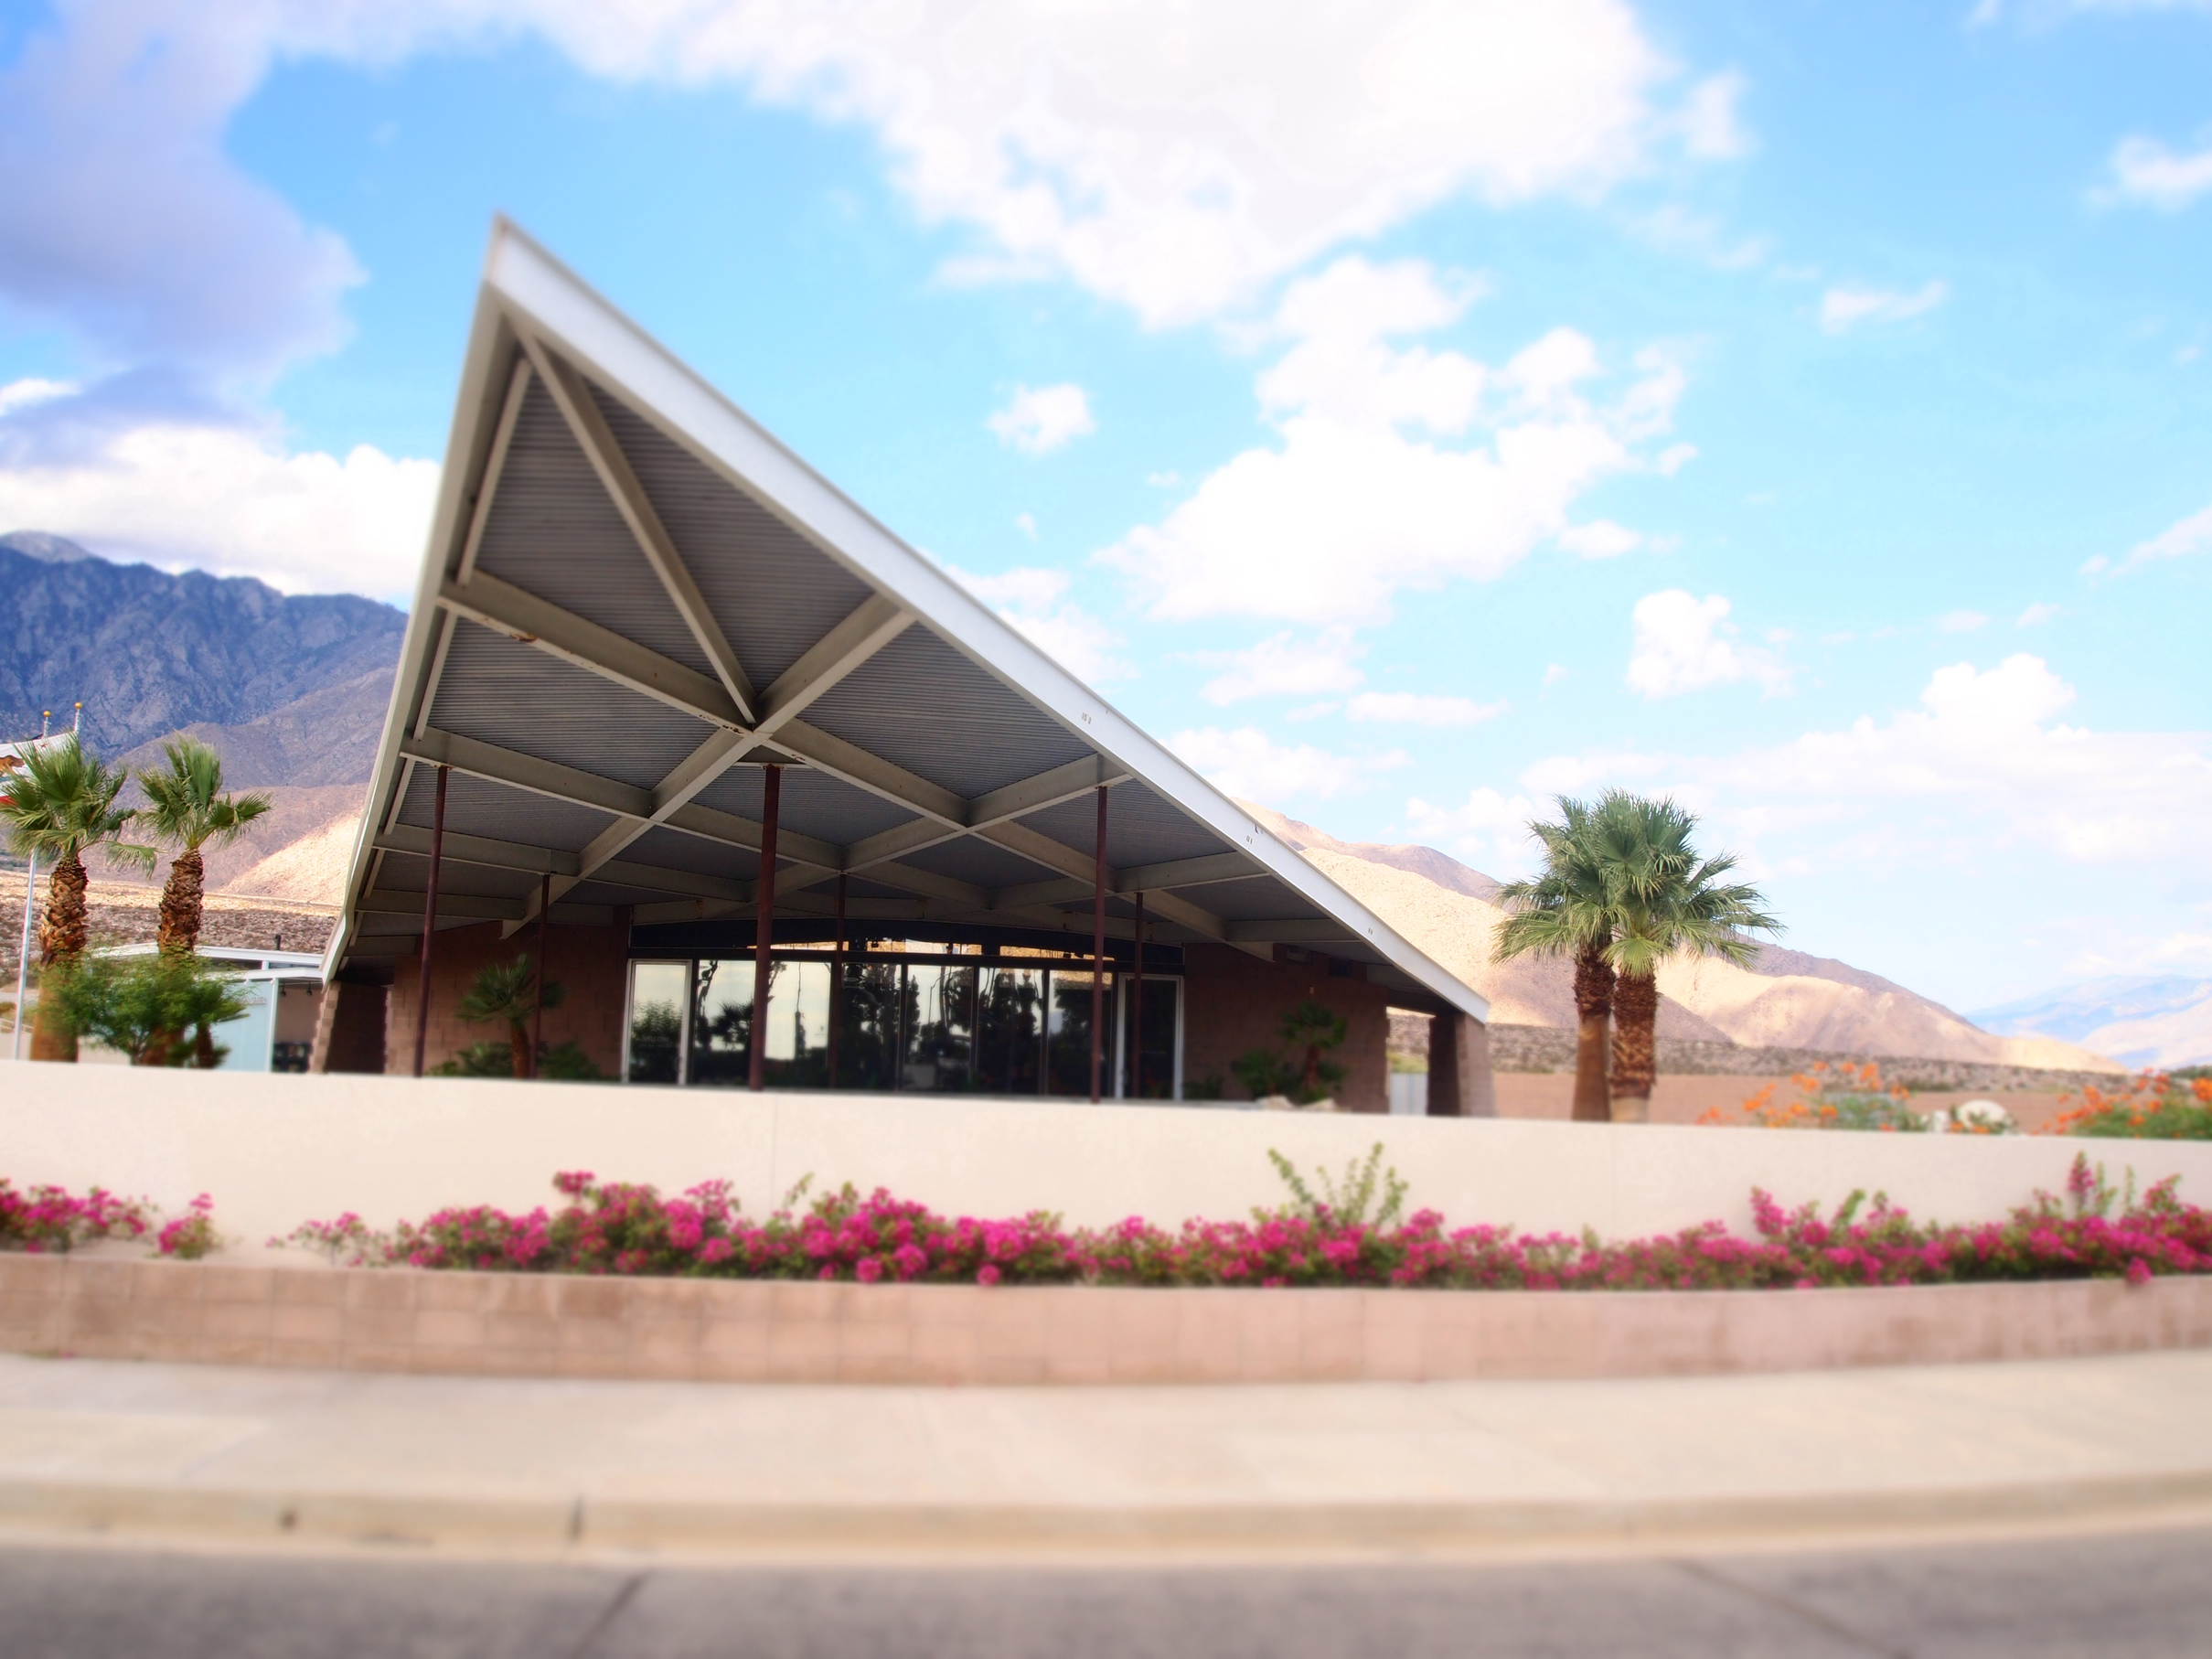 The triangular roof/overhang of the Visitor's Center juts into the sky. Mountains and palm trees are in the background.